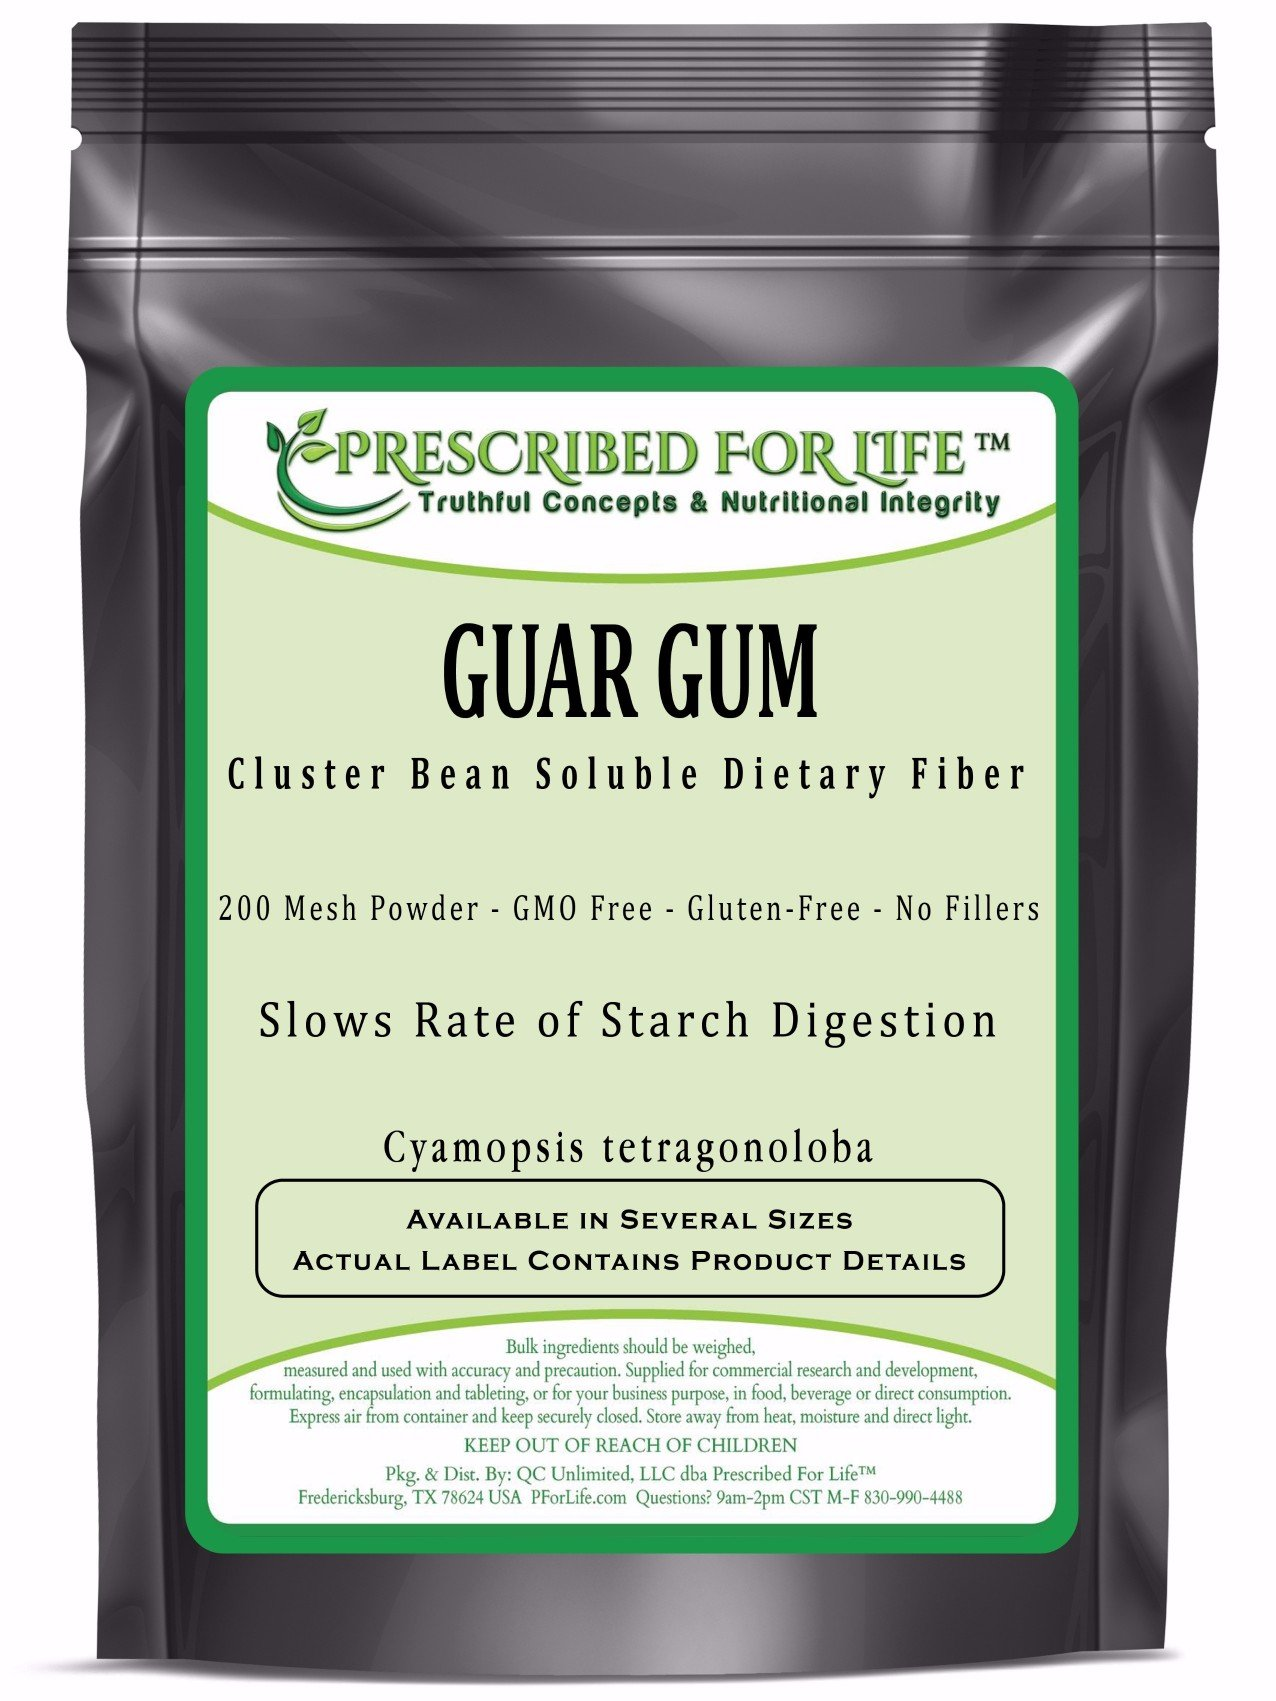 Guar Gum - Natural Dietary Soluble Fiber Powder - 200 Mesh, 10 kg